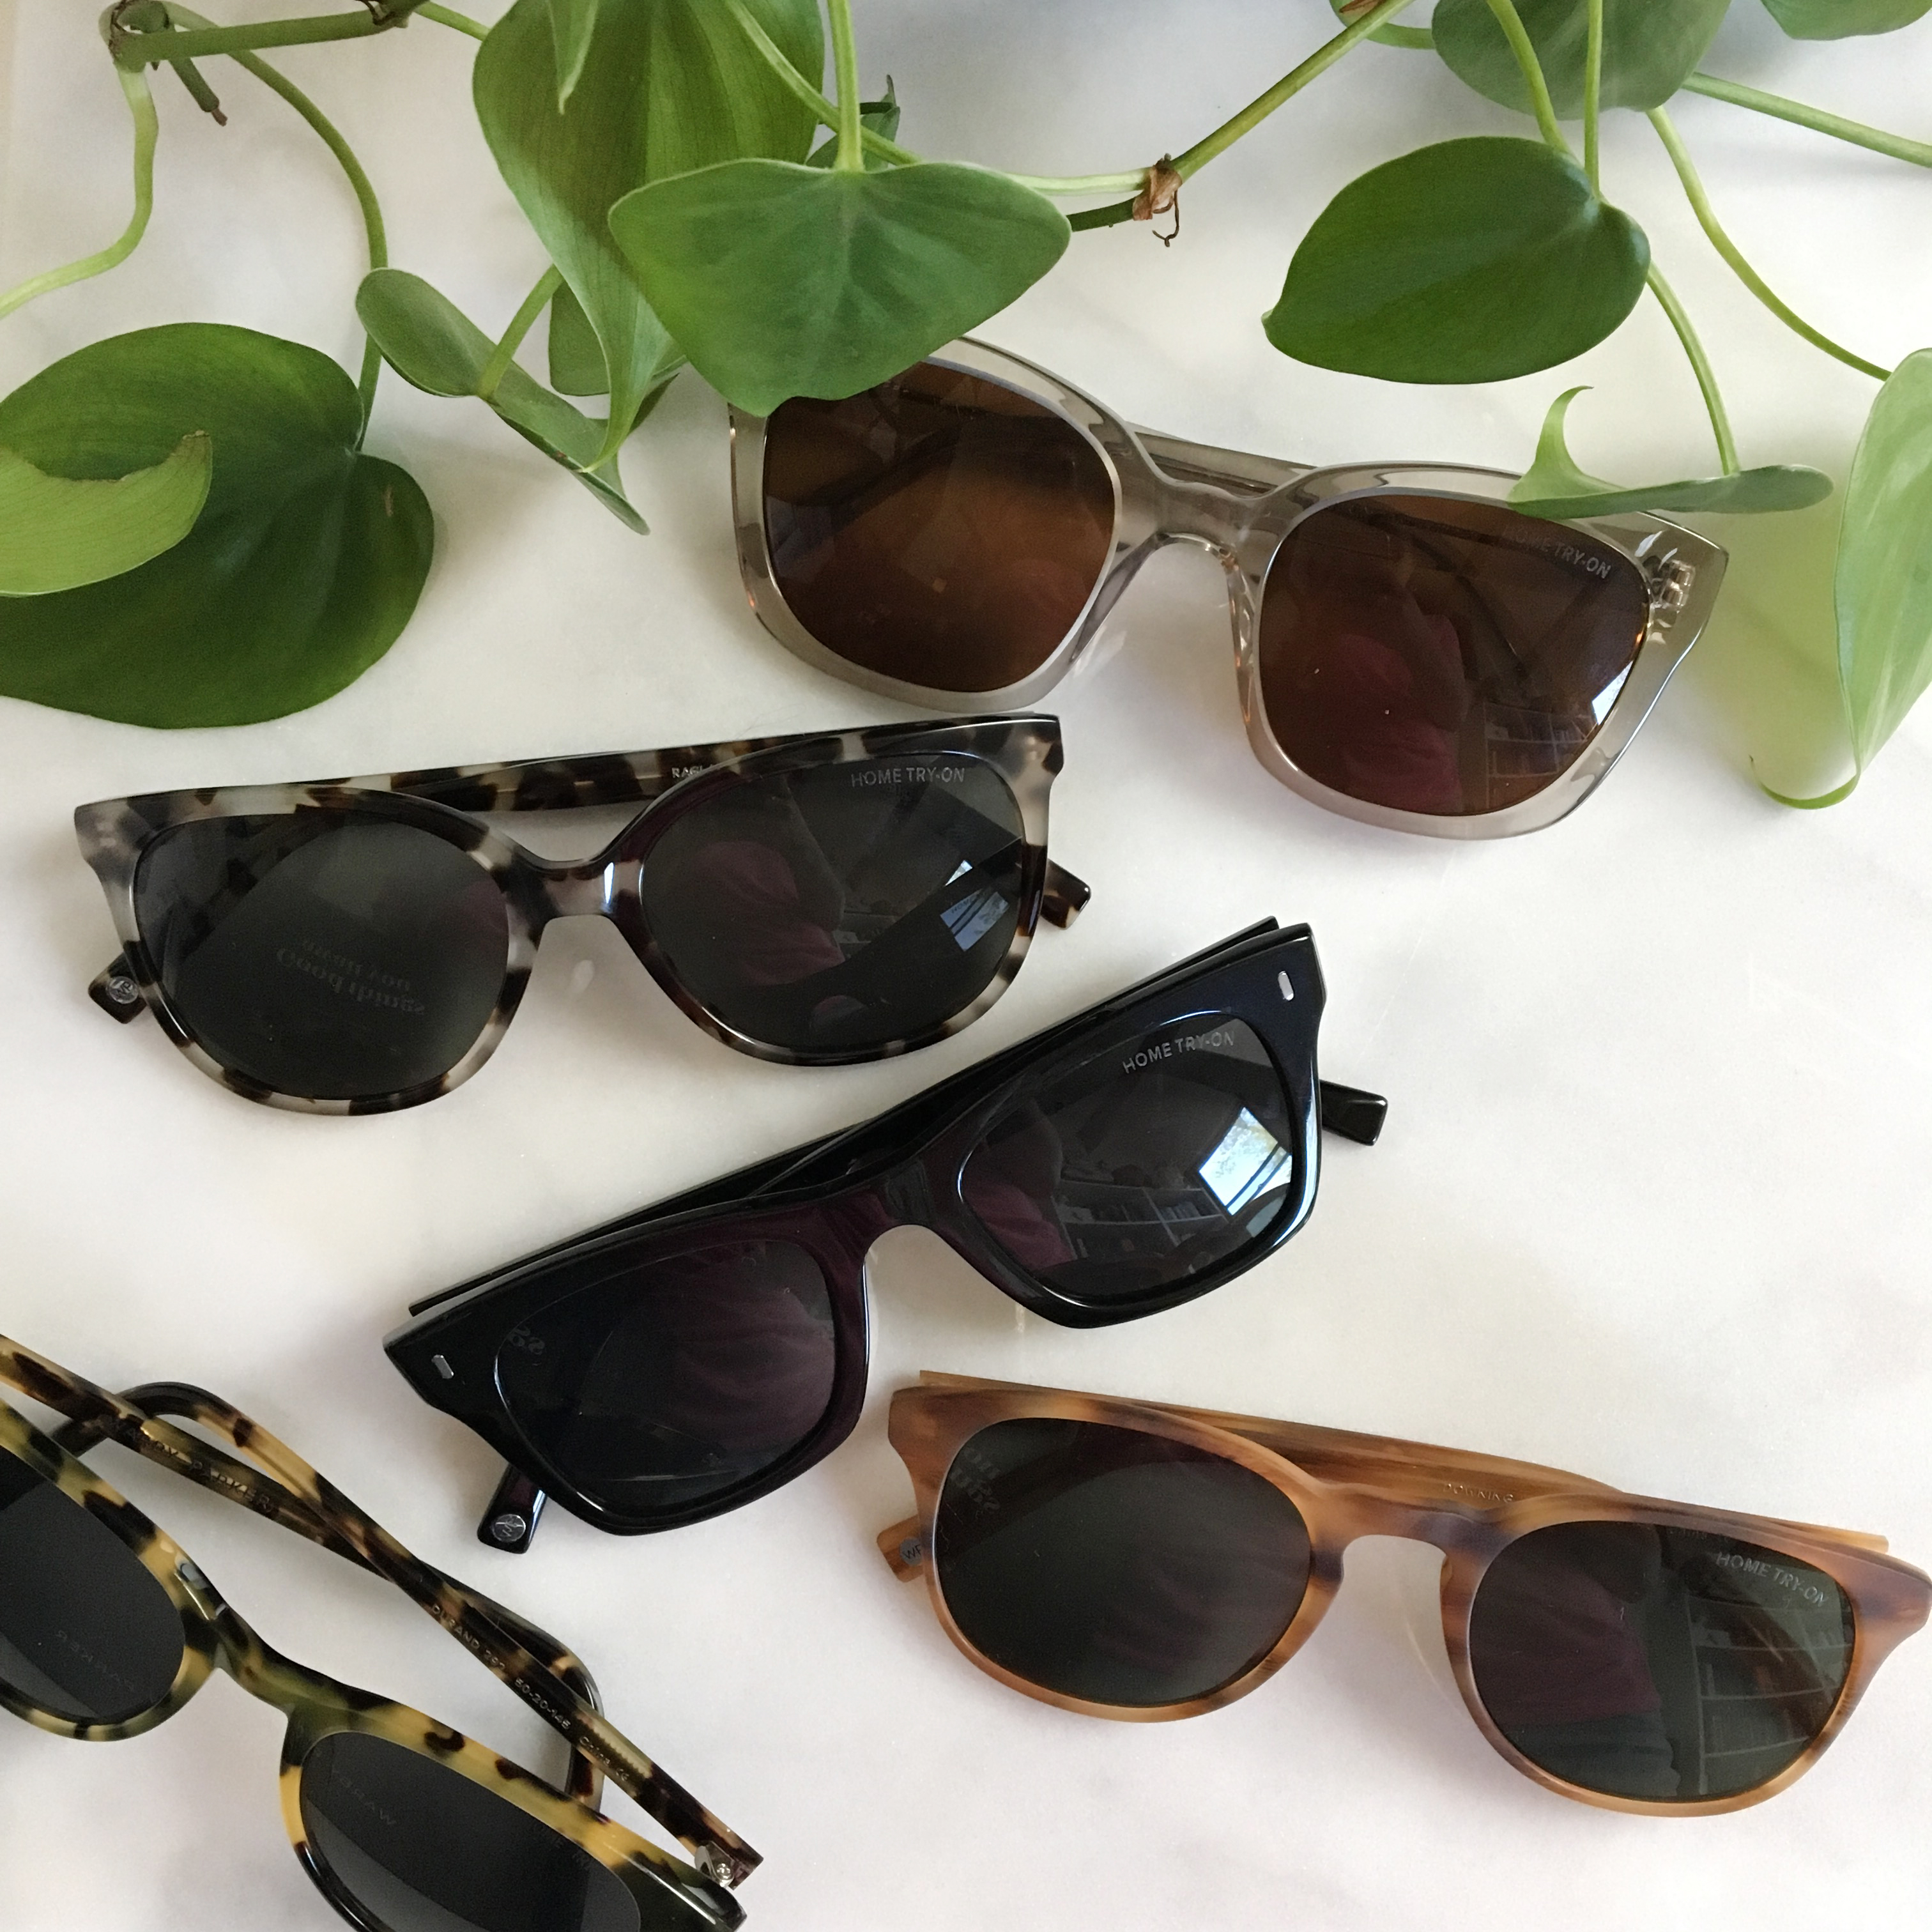 New warby parker sunglasses